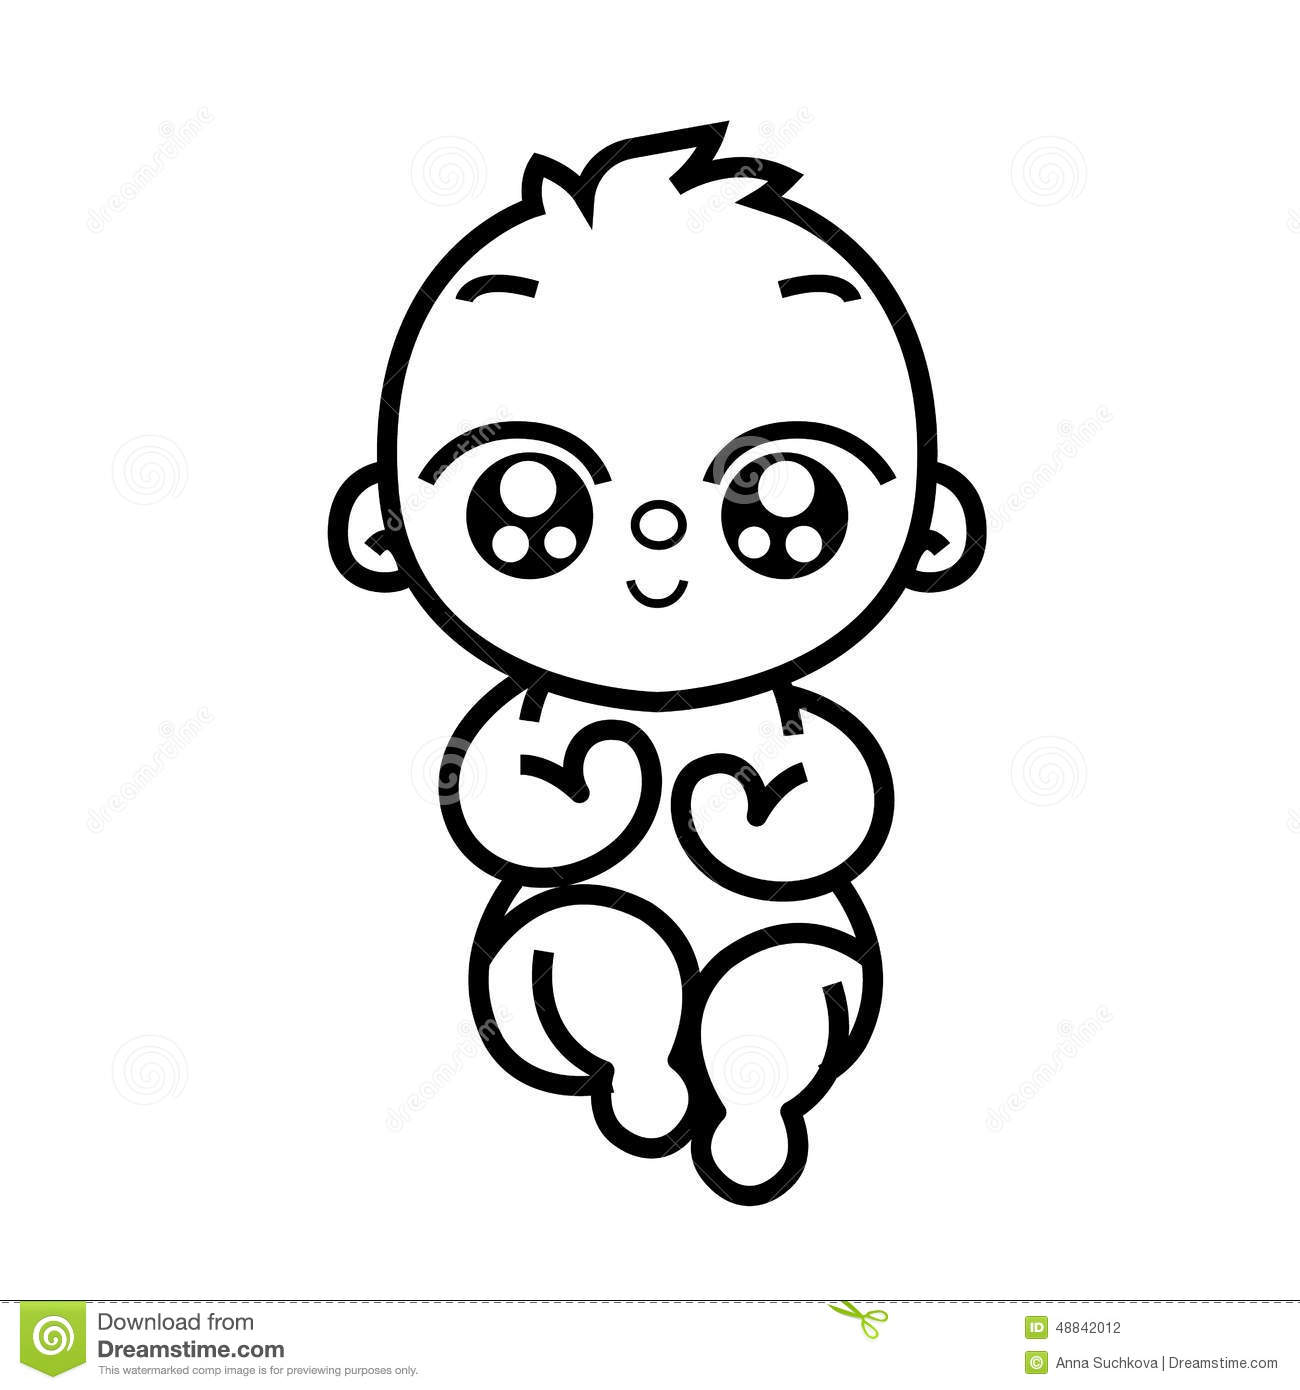 Greek Mythology Icons 1749707 furthermore Stock Illustration Newborn Little Baby Smiling Small Arms Legs Stylized Simplified Form Suitable Icons Logos Image48842012 likewise Dibujos Para Colorear De Monstruos as well Imagen Para Colorear De Nino De Transformers Faciles together with Dia Del Nino. on happy birthday son cartoon